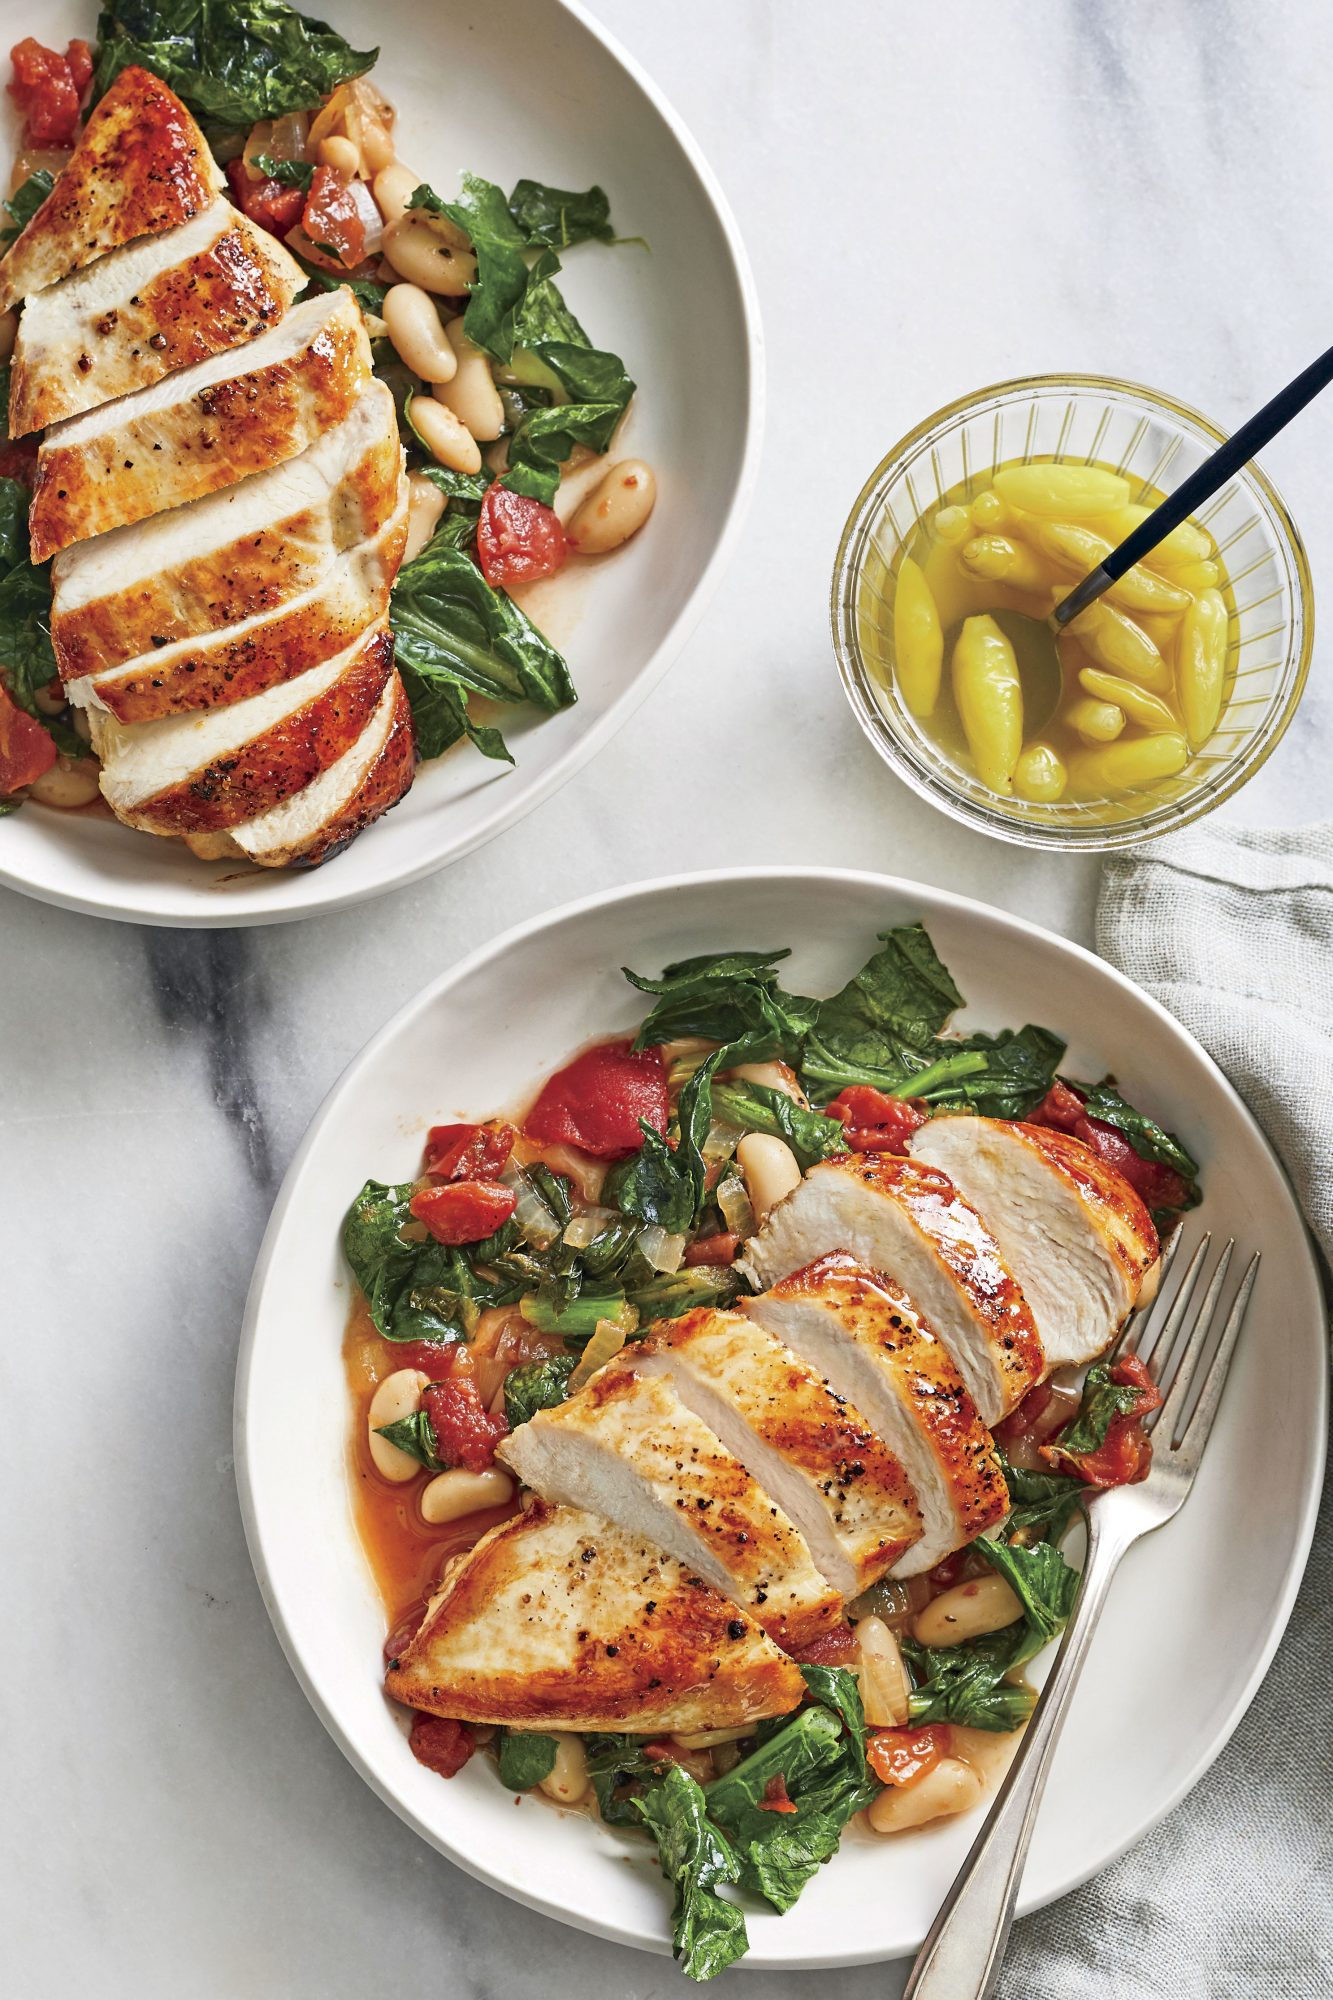 Skillet Chicken Breast with Beans and Greens